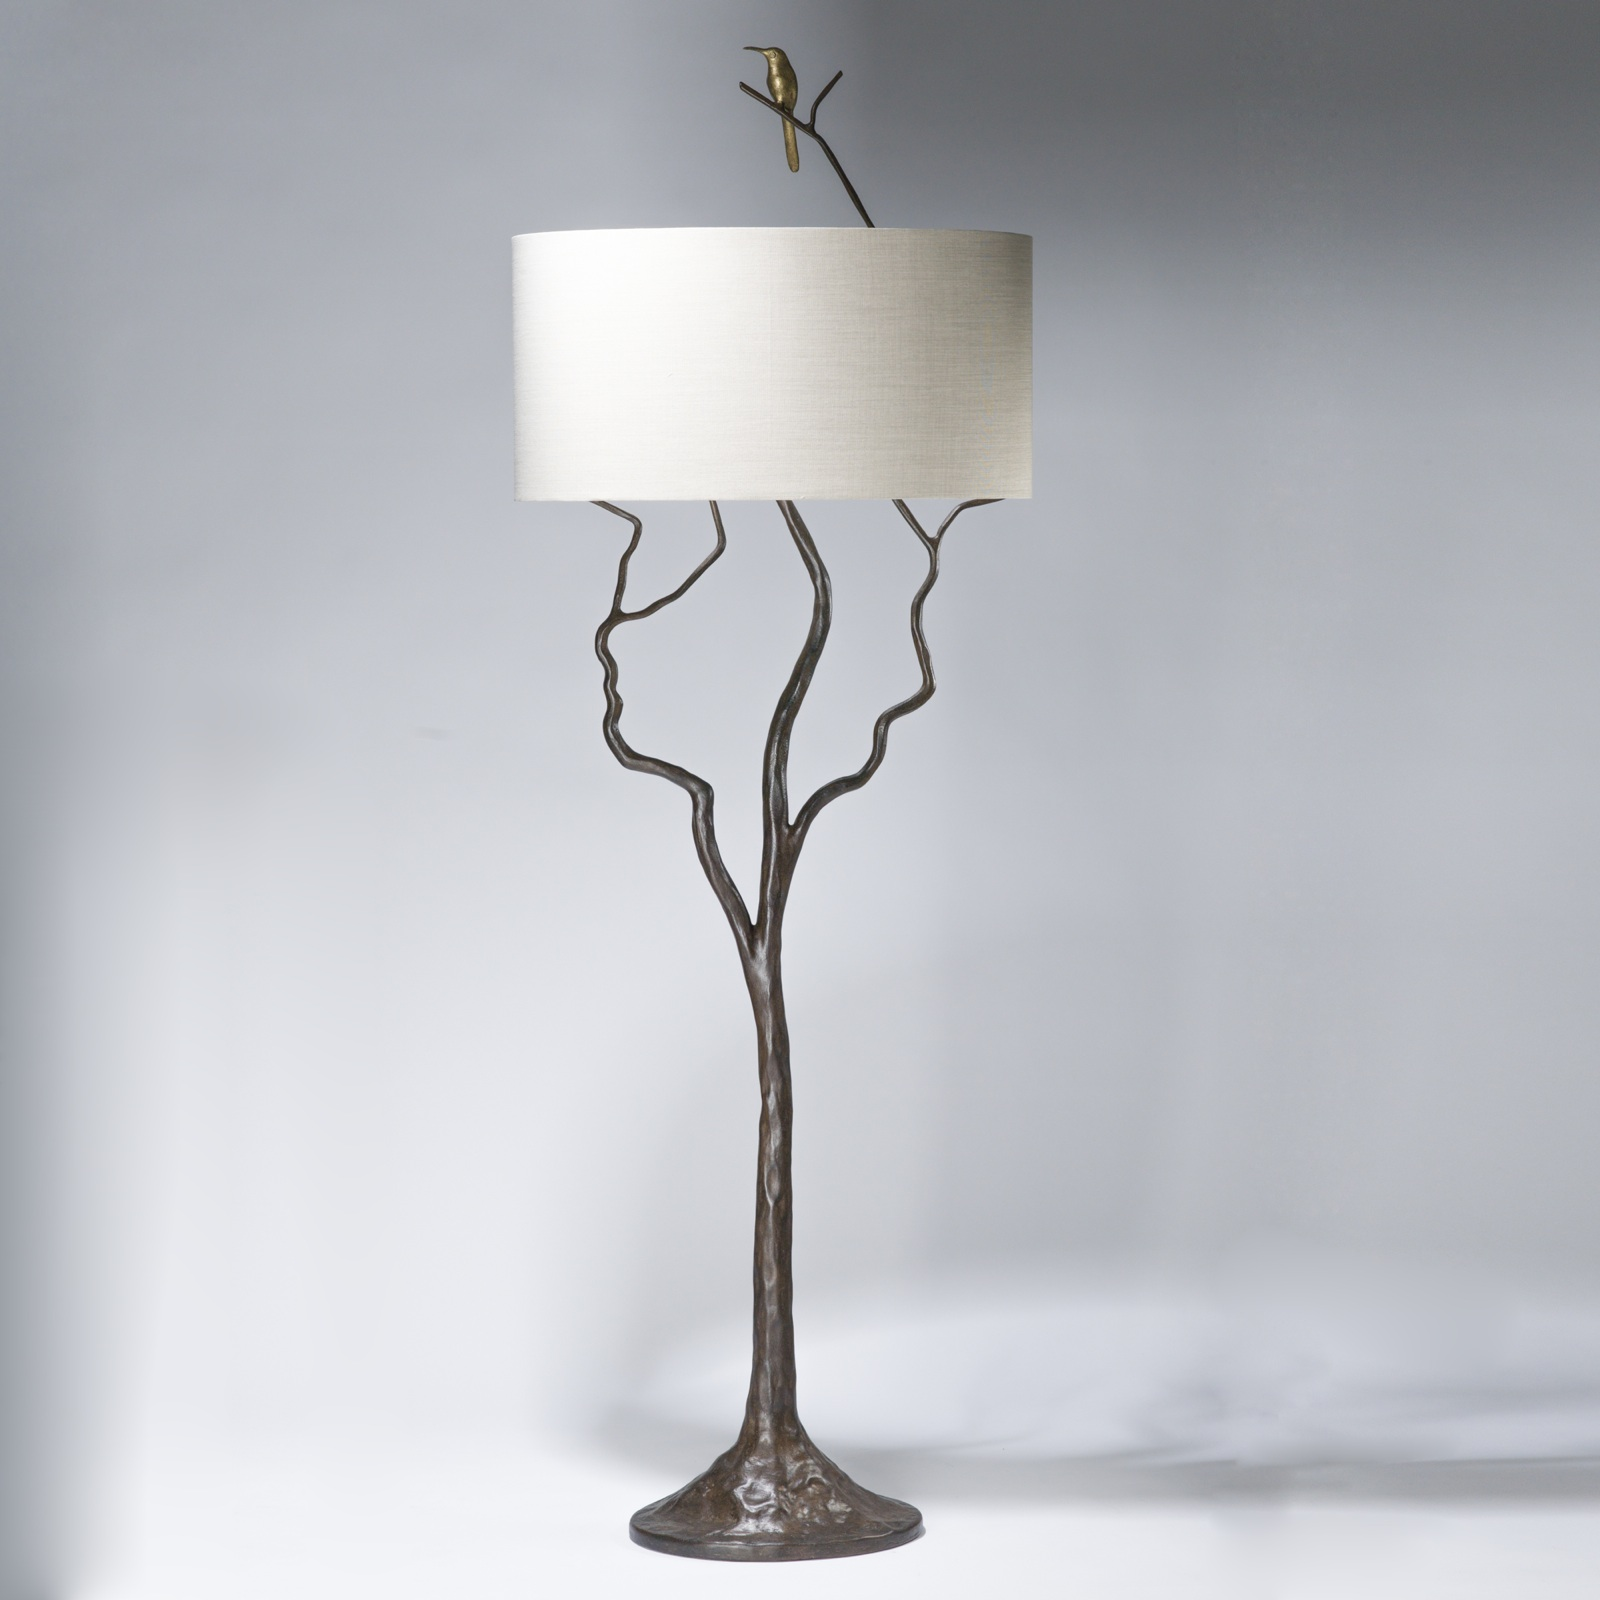 Tall tree and humming bird floor lamp in bronze, distressed gold ...